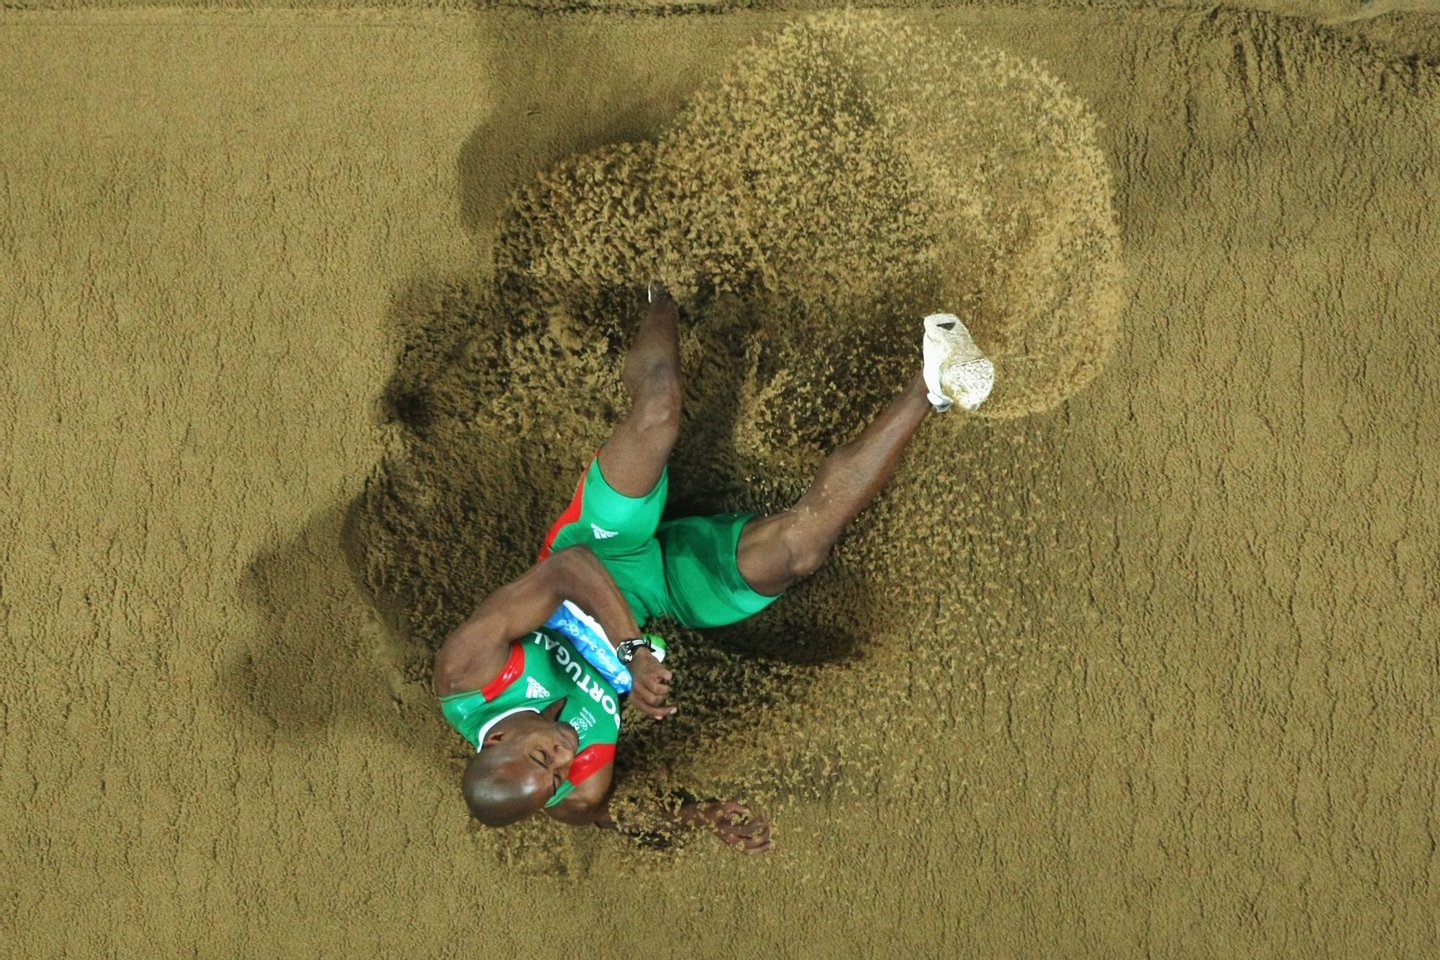 BEIJING - AUGUST 21: Nelson Evora of Portugal competes in the Men's Triple Jump Final held at the National Stadium during Day 13 of the Beijing 2008 Olympic Games on August 21, 2008 in Beijing, China. (Photo by Jed Jacobsohn/Getty Images)